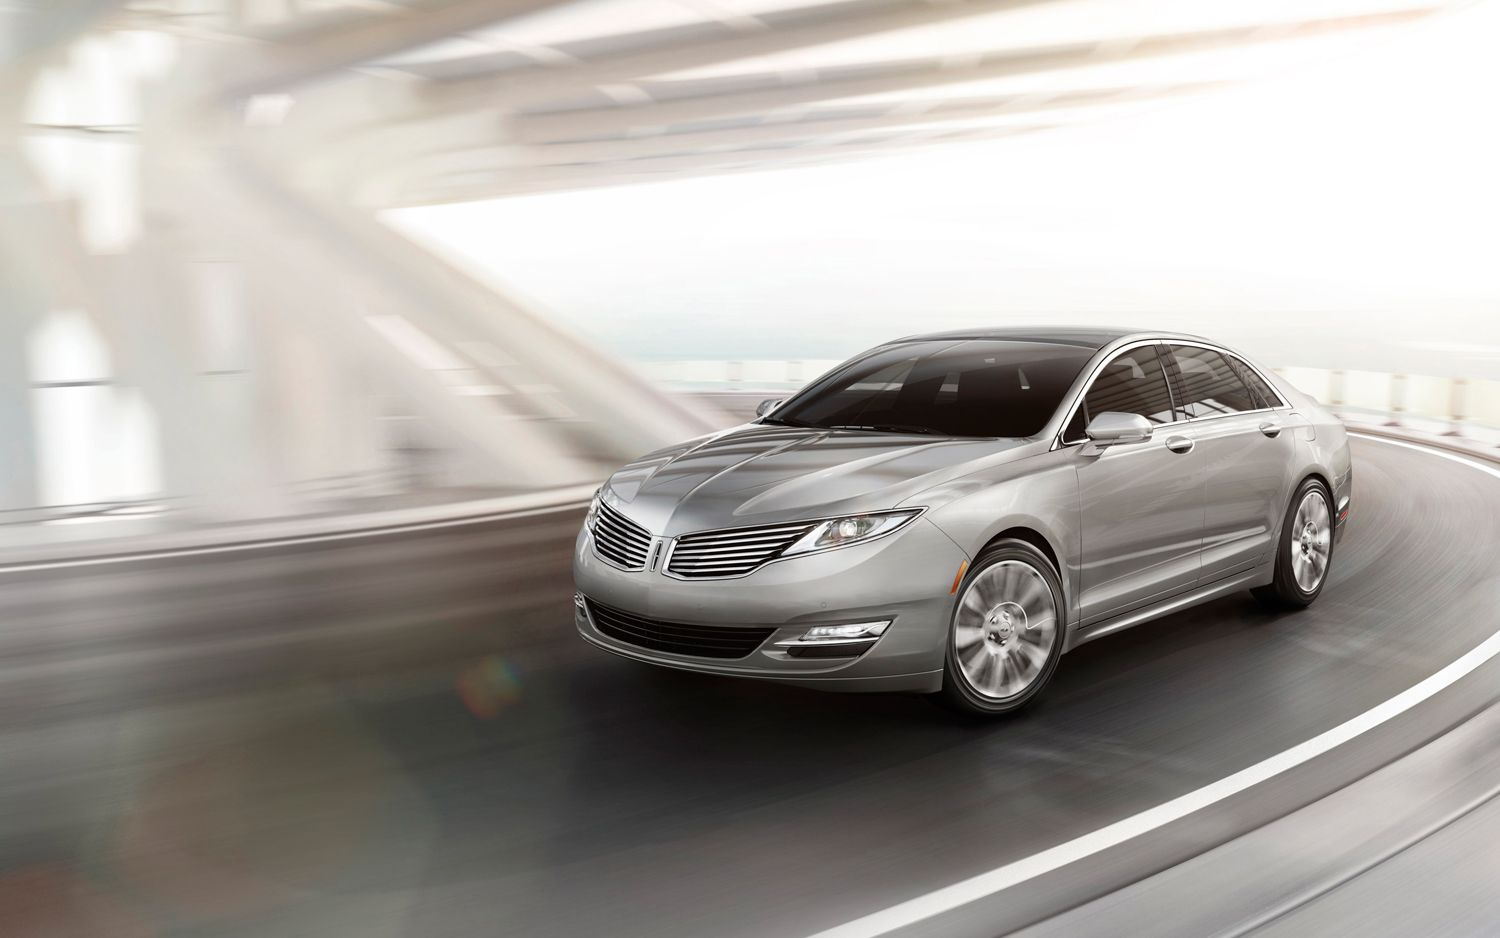 2013 Lincoln MKZ Front Left View1